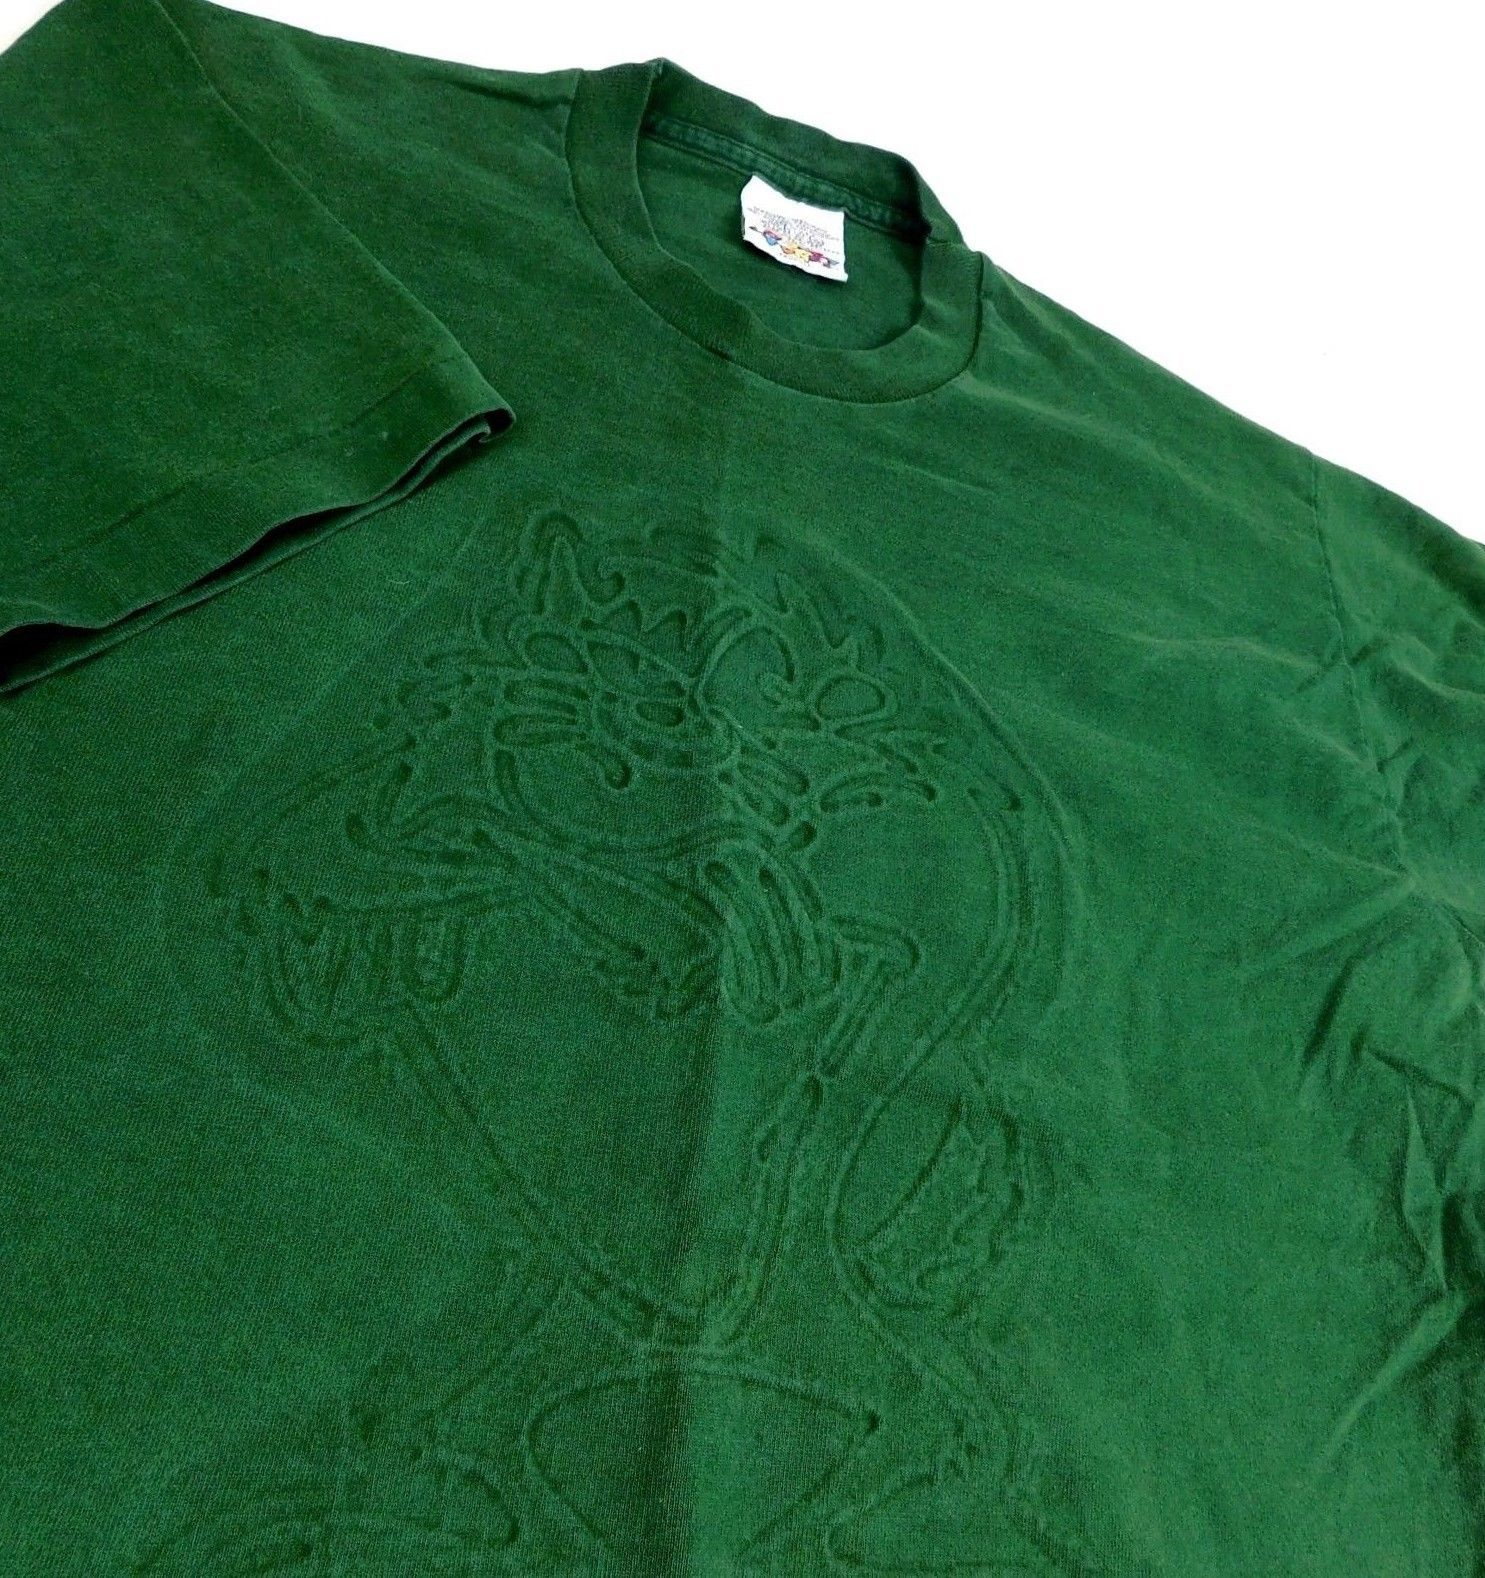 Primary image for Vtg 1994 Looney Tunes Tazmanian Devil Green T Shirt Taz Sz M USA Raised Graphics